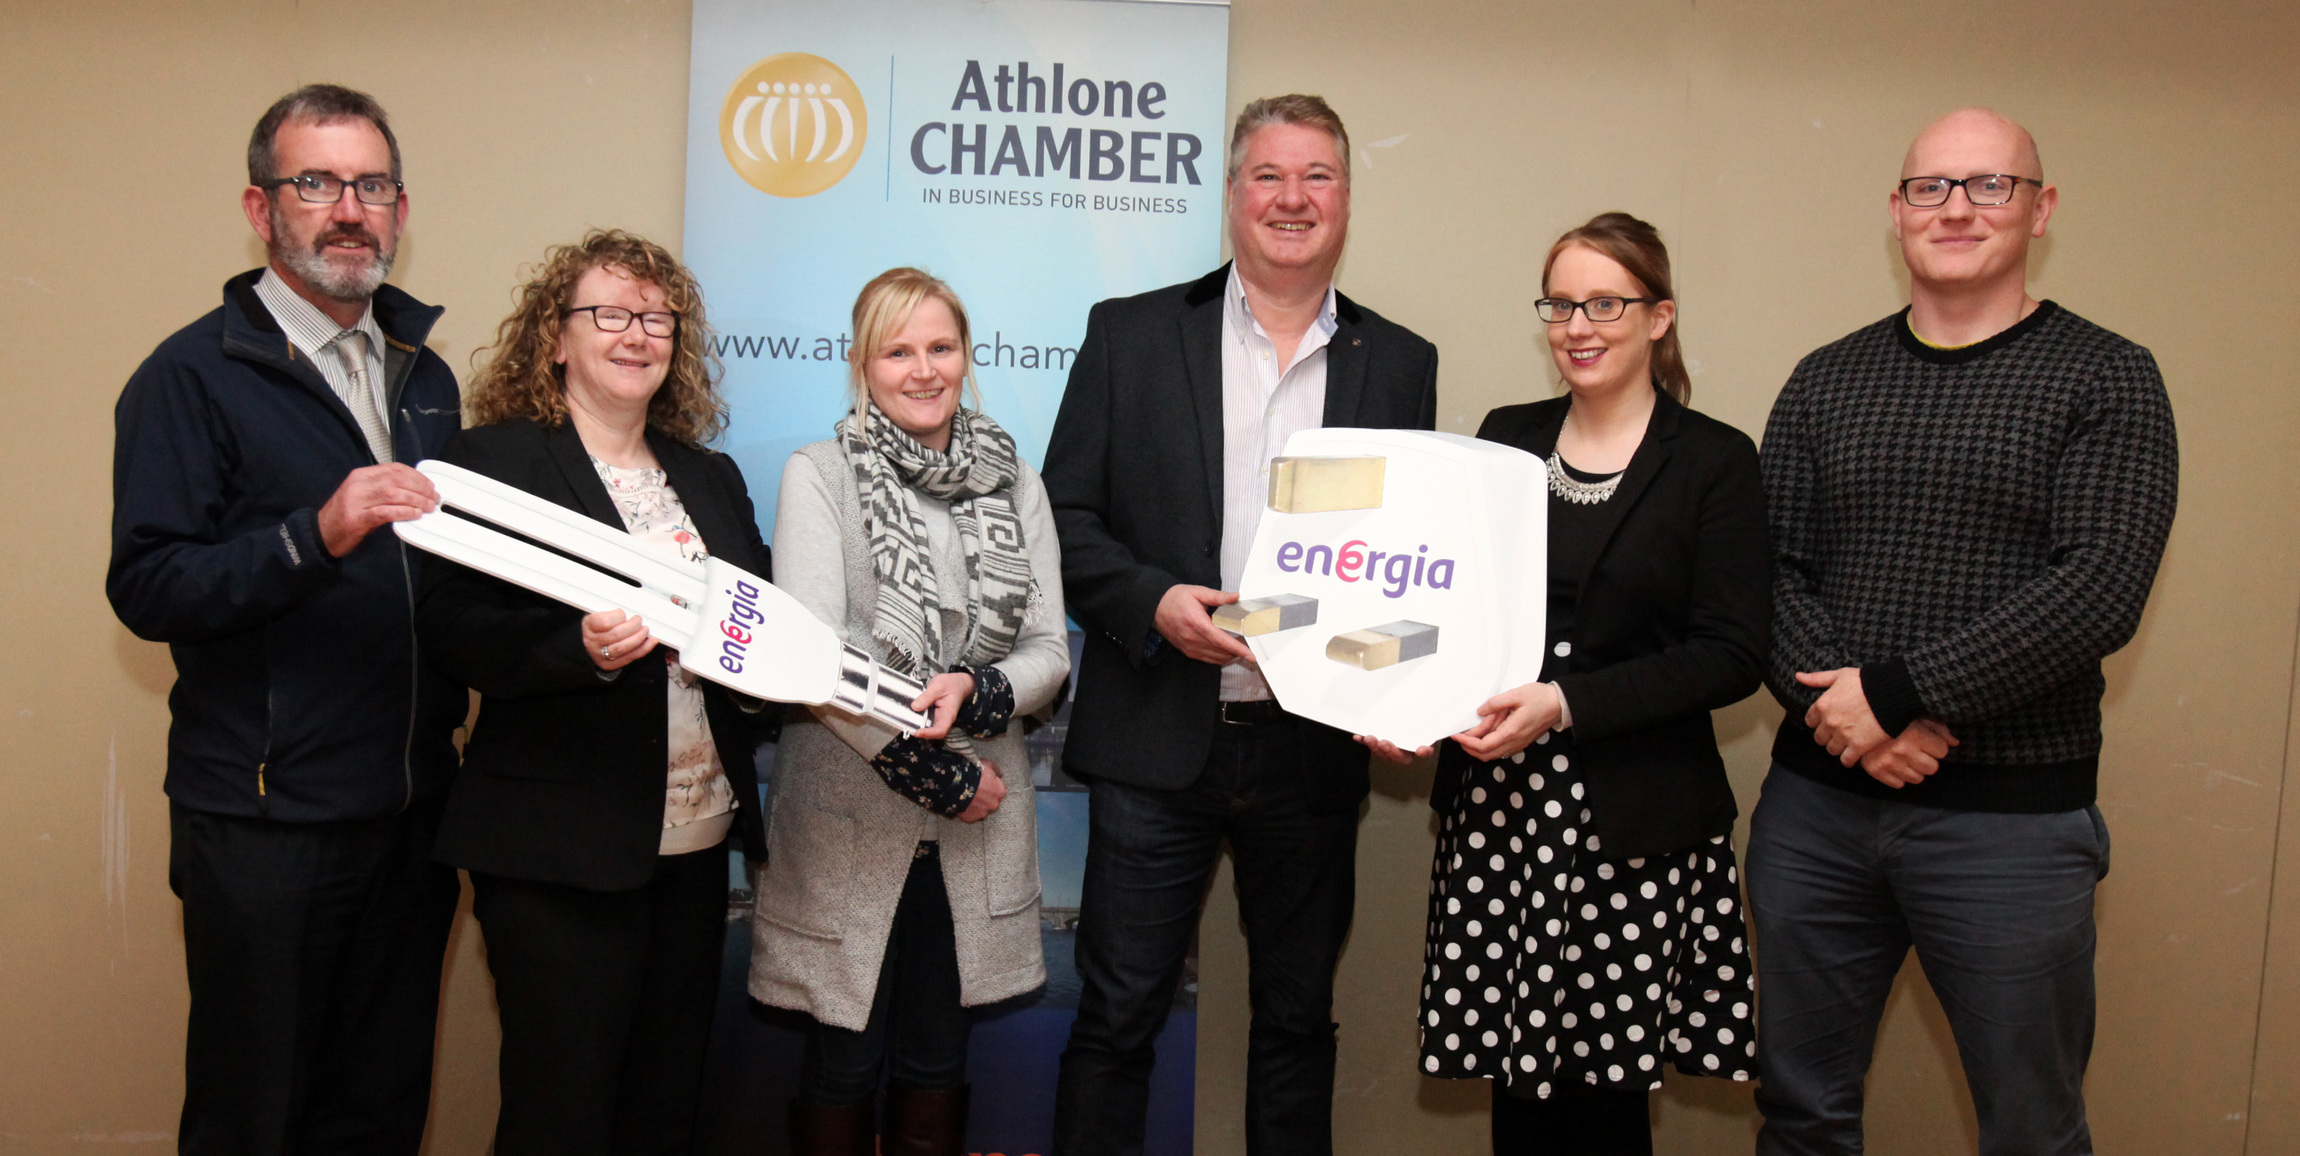 Athlone businesses get energised about increasing efficiency